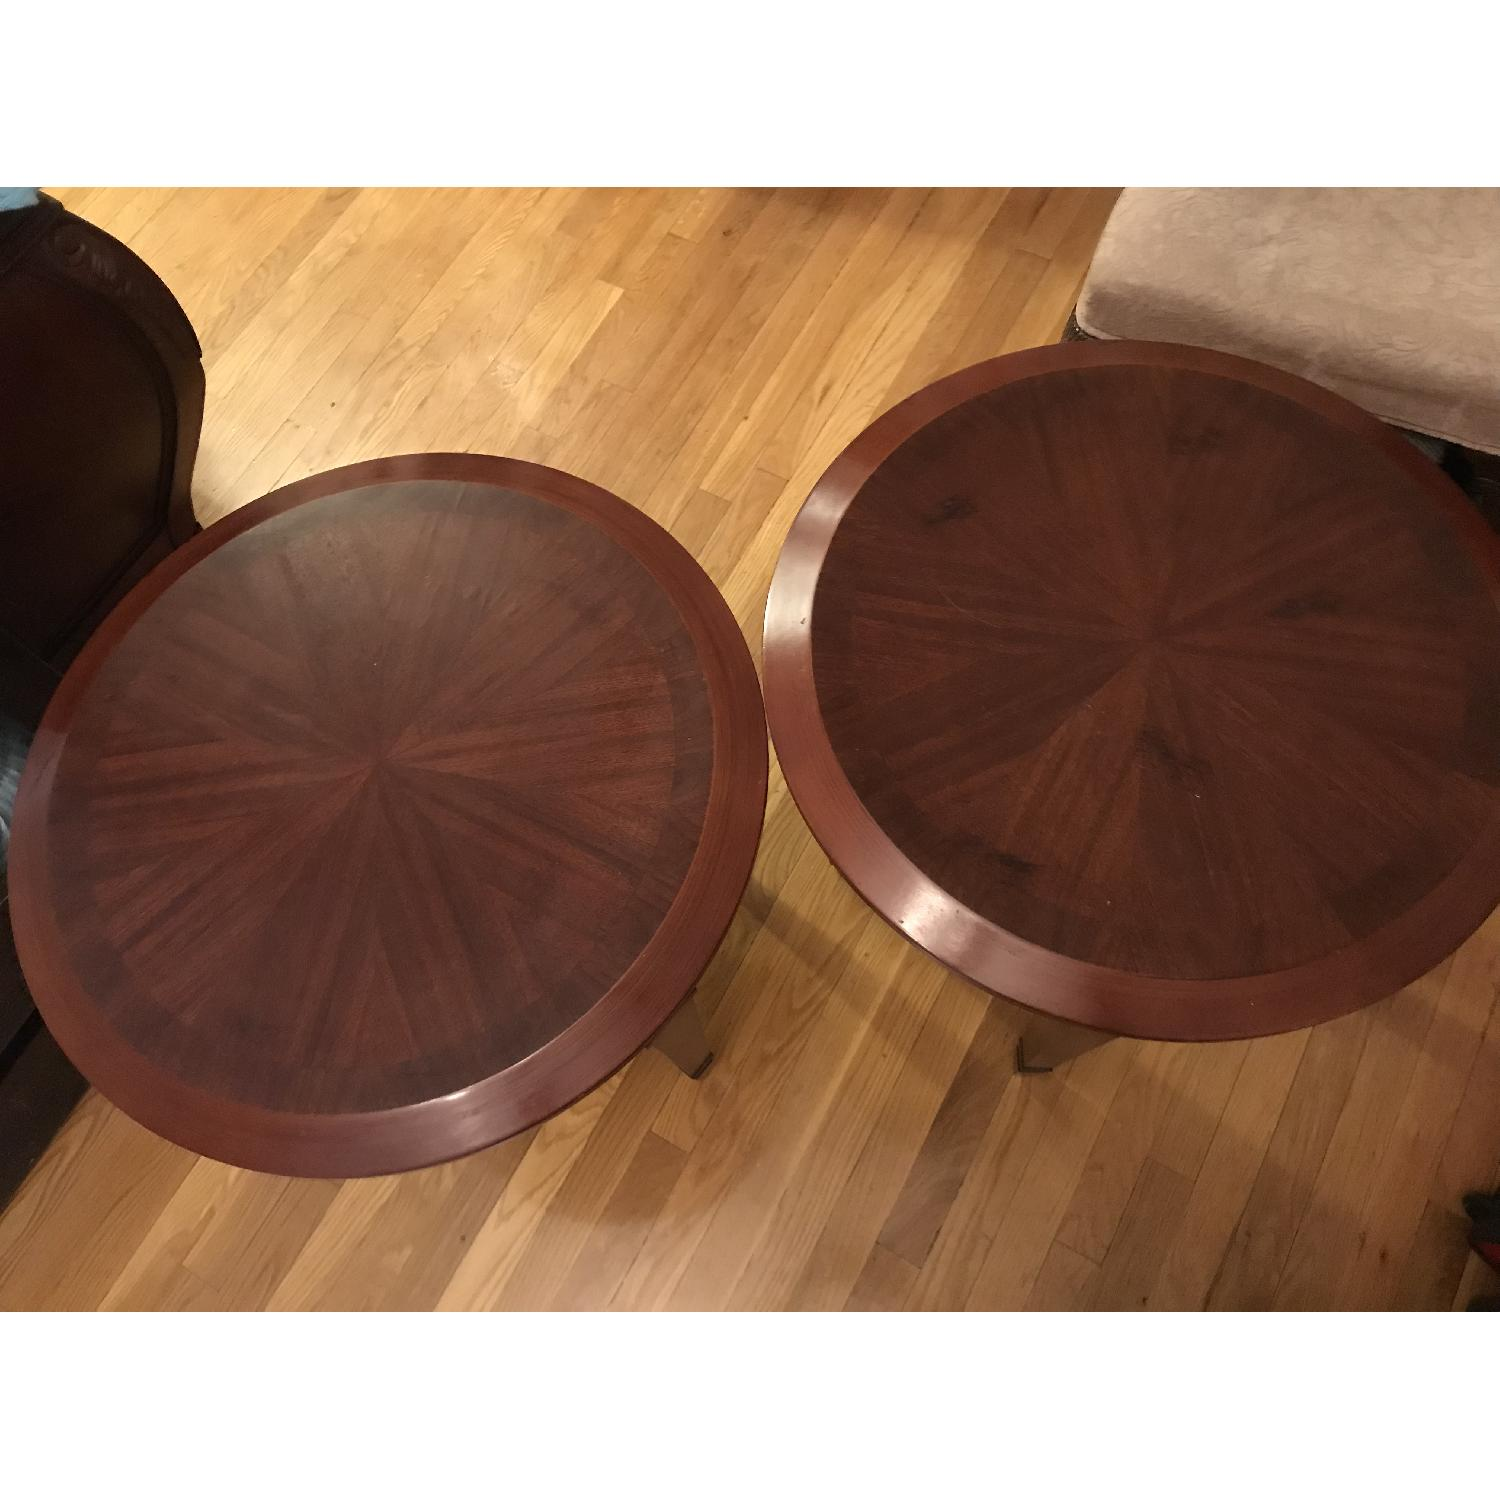 Bombay Company Antique-Style Side Tables - image-6